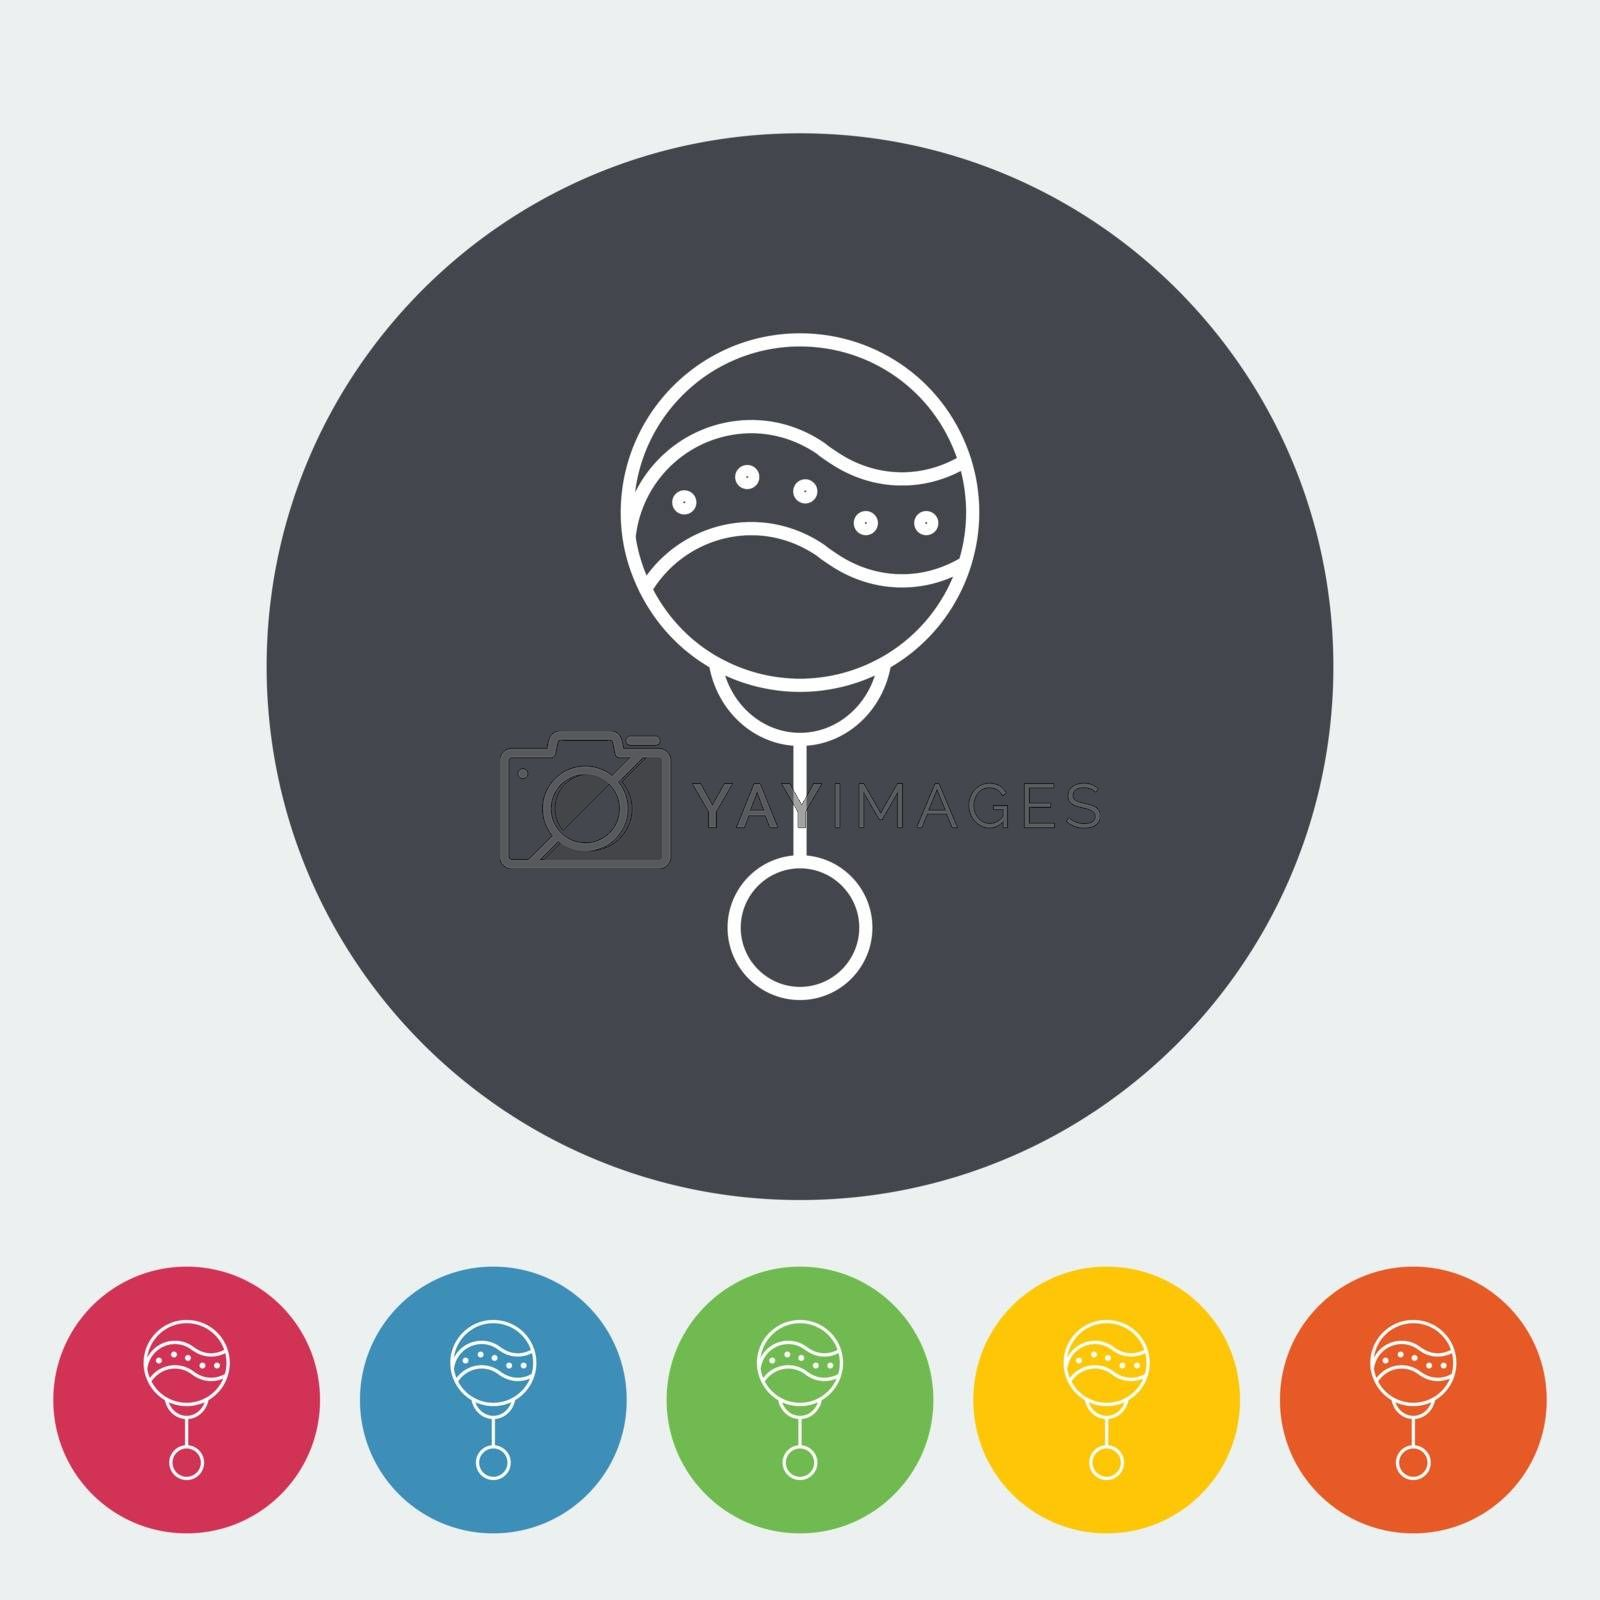 Rattle icon. Thin line flat vector related icon for web and mobile applications. It can be used as - logo, pictogram, icon, infographic element. Vector Illustration.